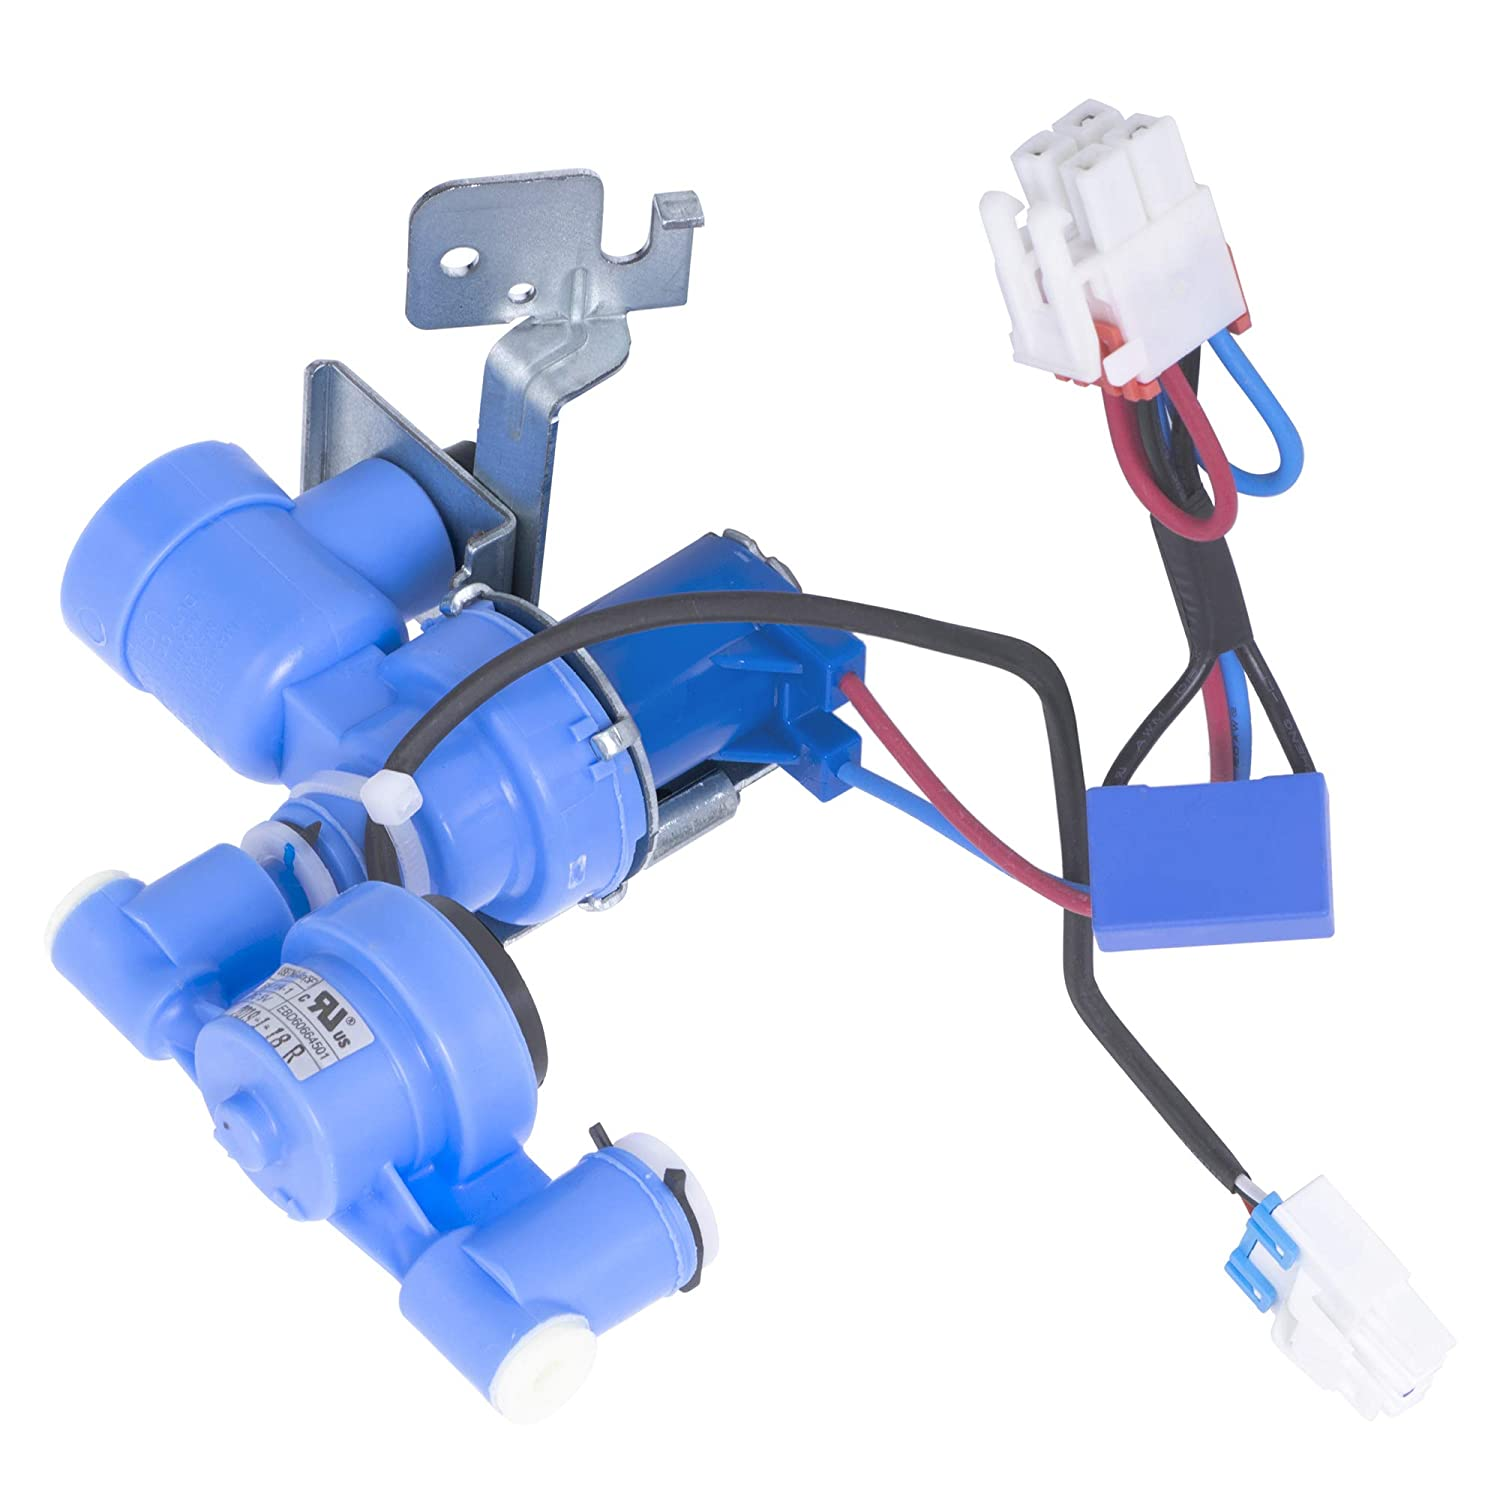 Replaces 5221JA2011J 5221JA2011P Ultra Durable AJU72992601 Refrigerator Water Inlet Valve Replacement Part by Blue Stars Exact Fit for LG Refrigerators